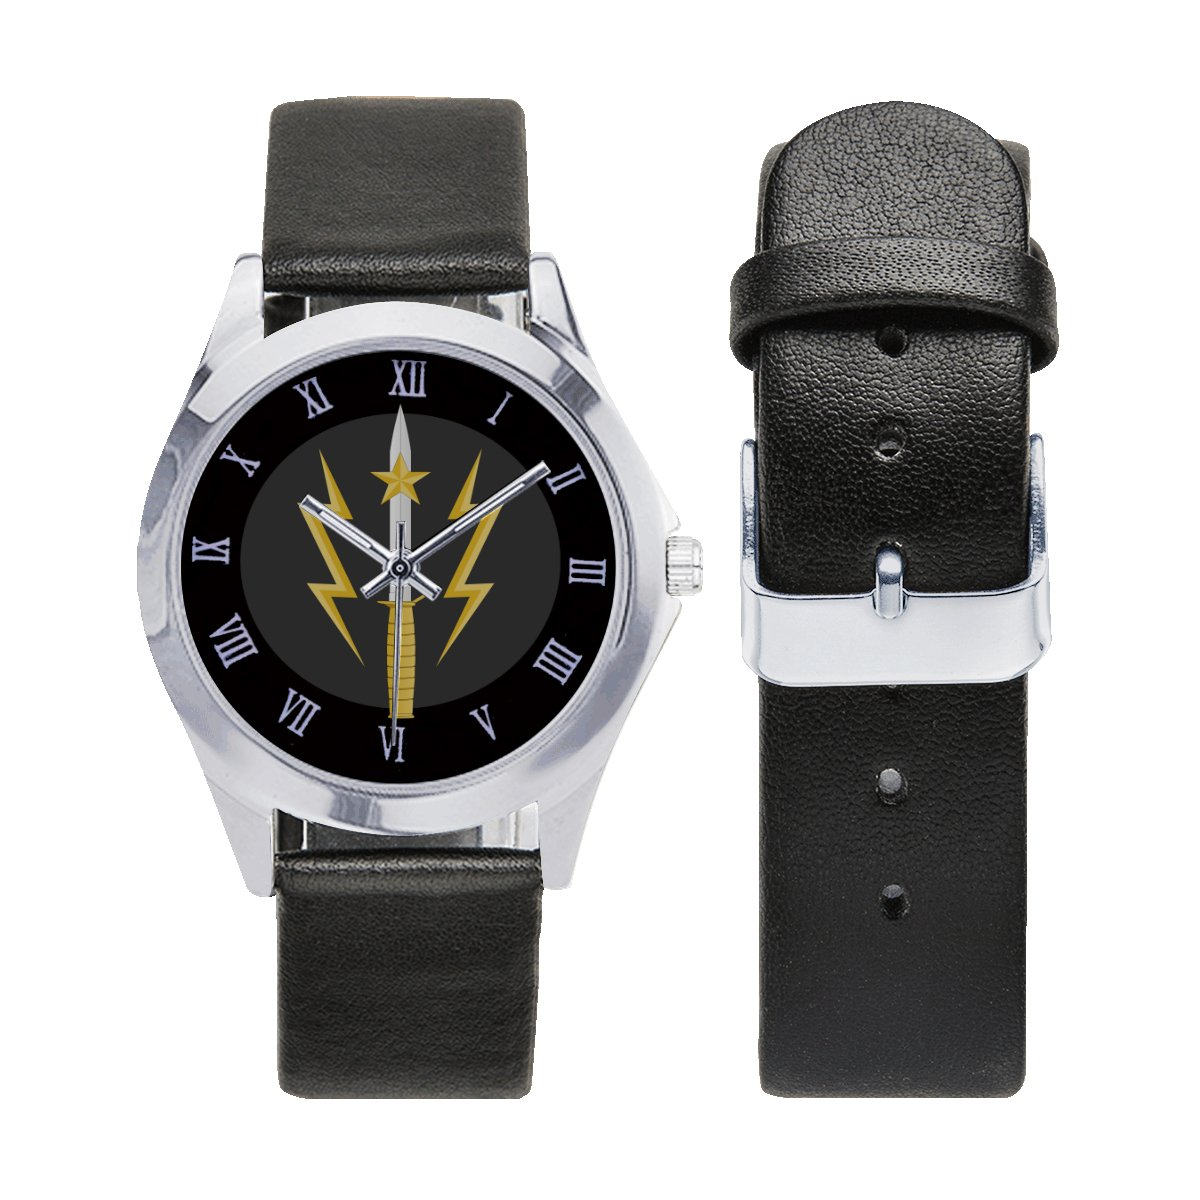 Pakistan Army Special Service Group Watches Leather Strap Watch Wrist Watches a perfect accessory